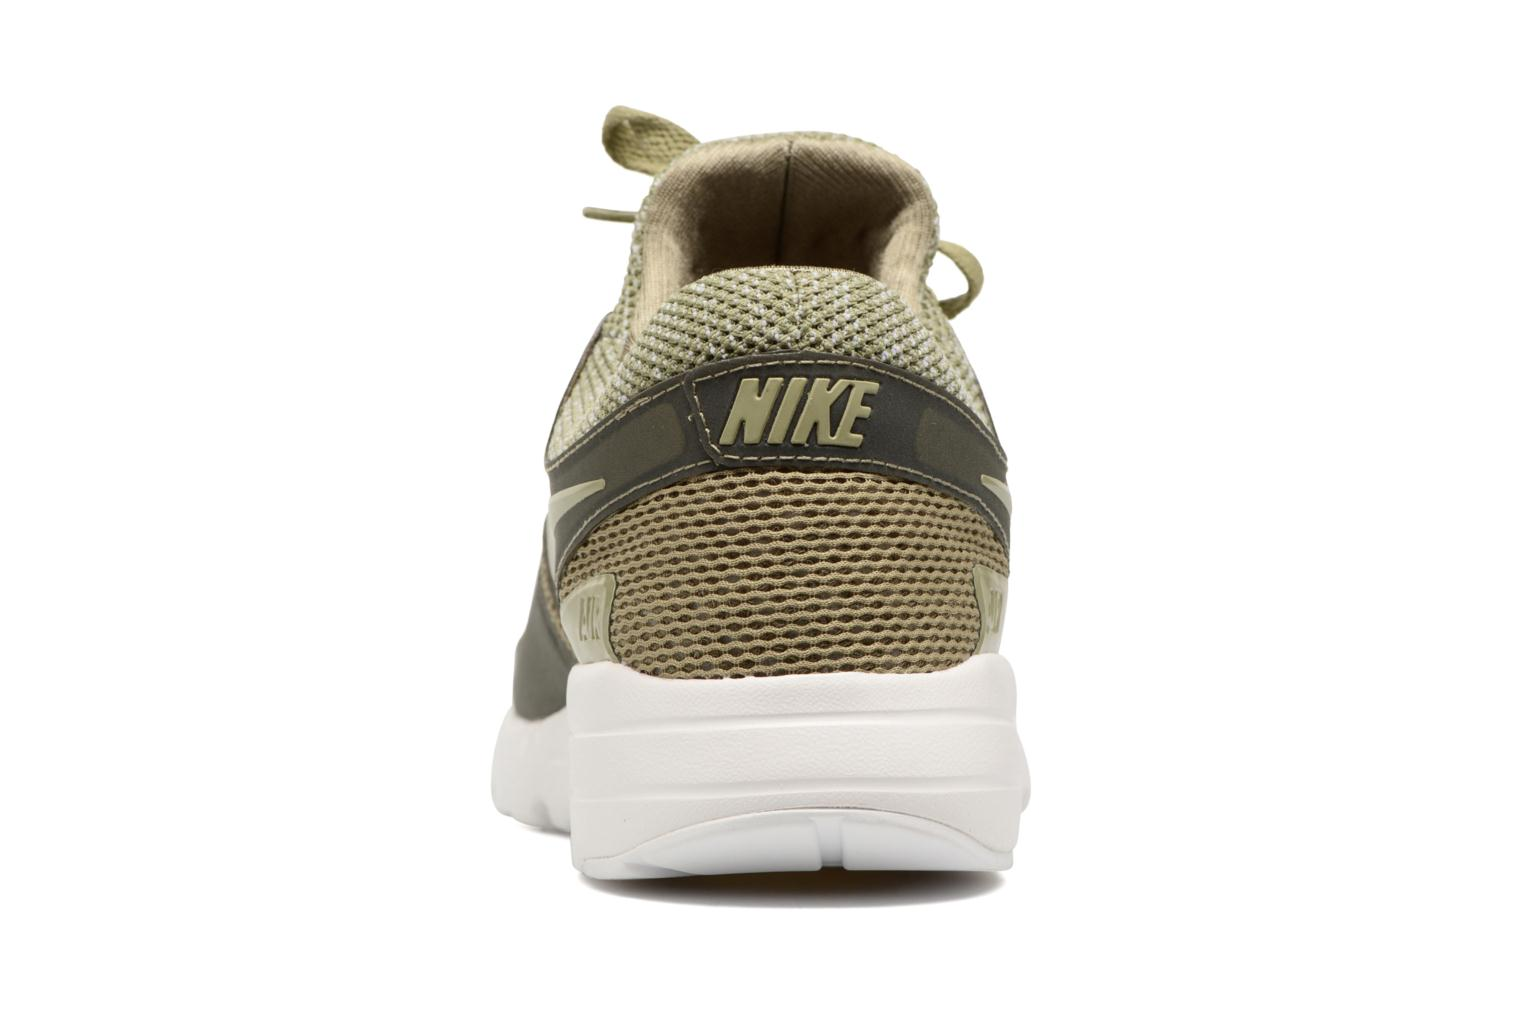 Nike Air Max Zero Br TROOPER/TROOPER-SUMMIT WHITE-CARGO KHAKI